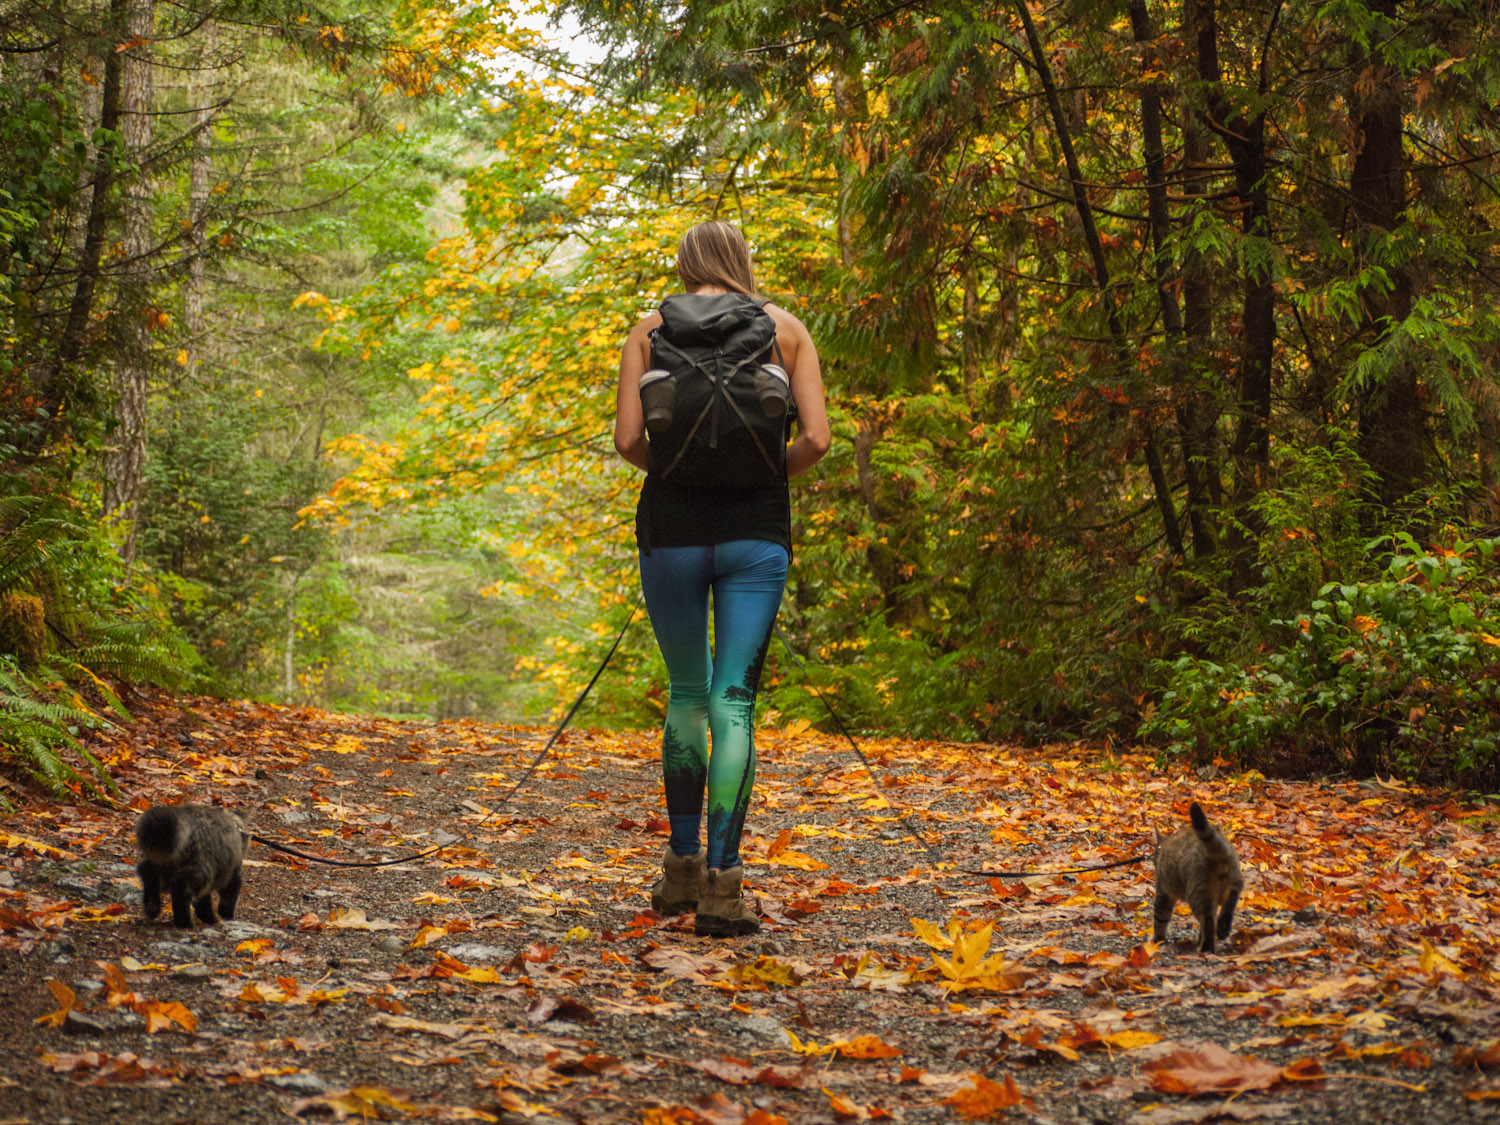 hiking with kittens